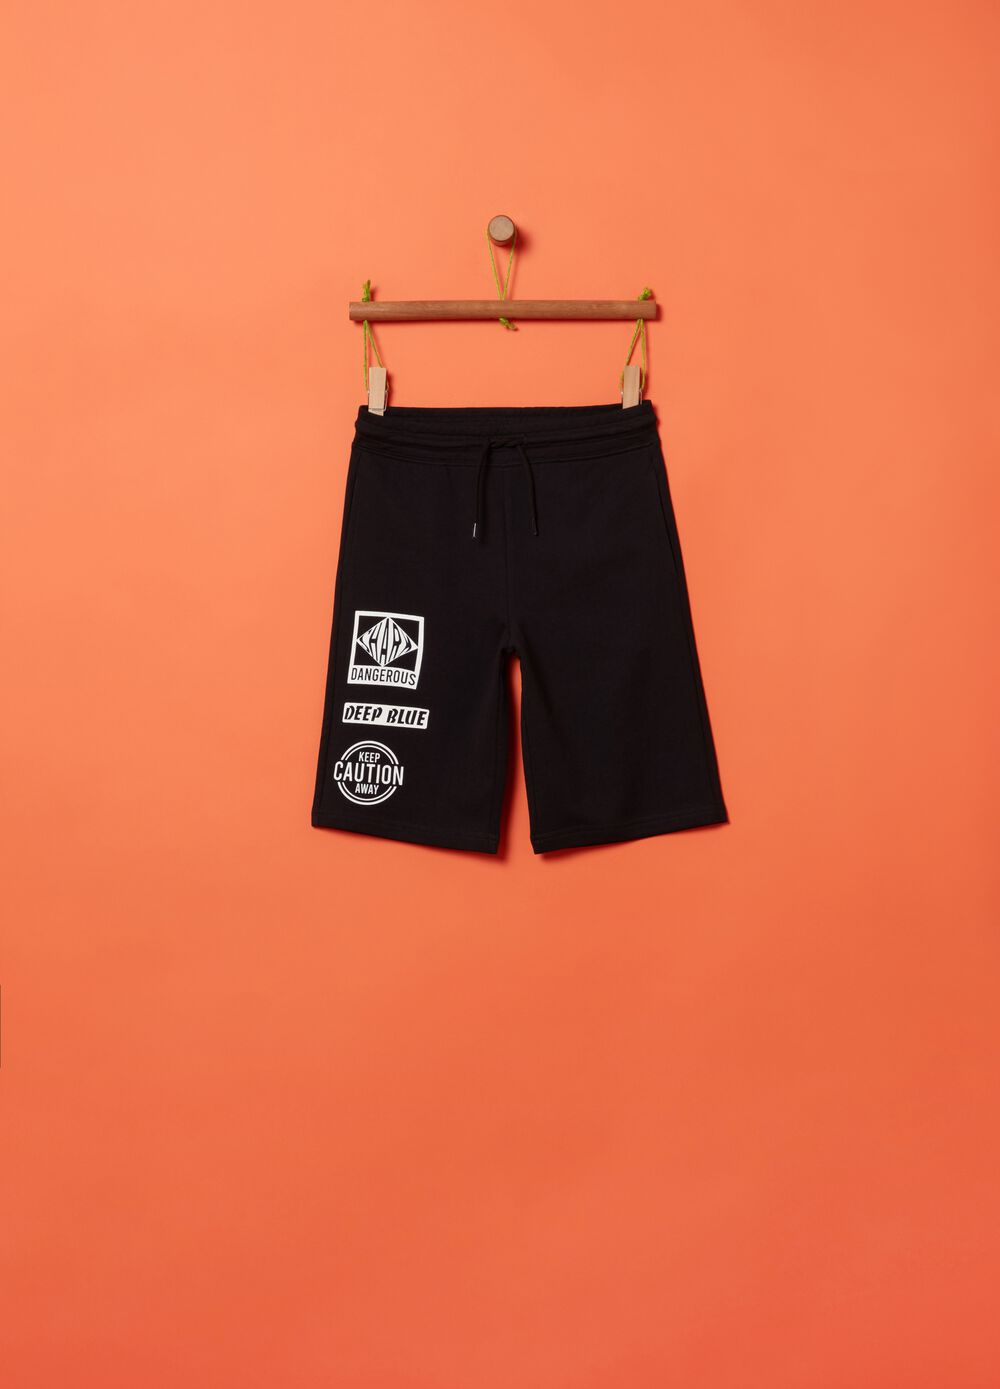 Bermuda shorts in 100% cotton with print